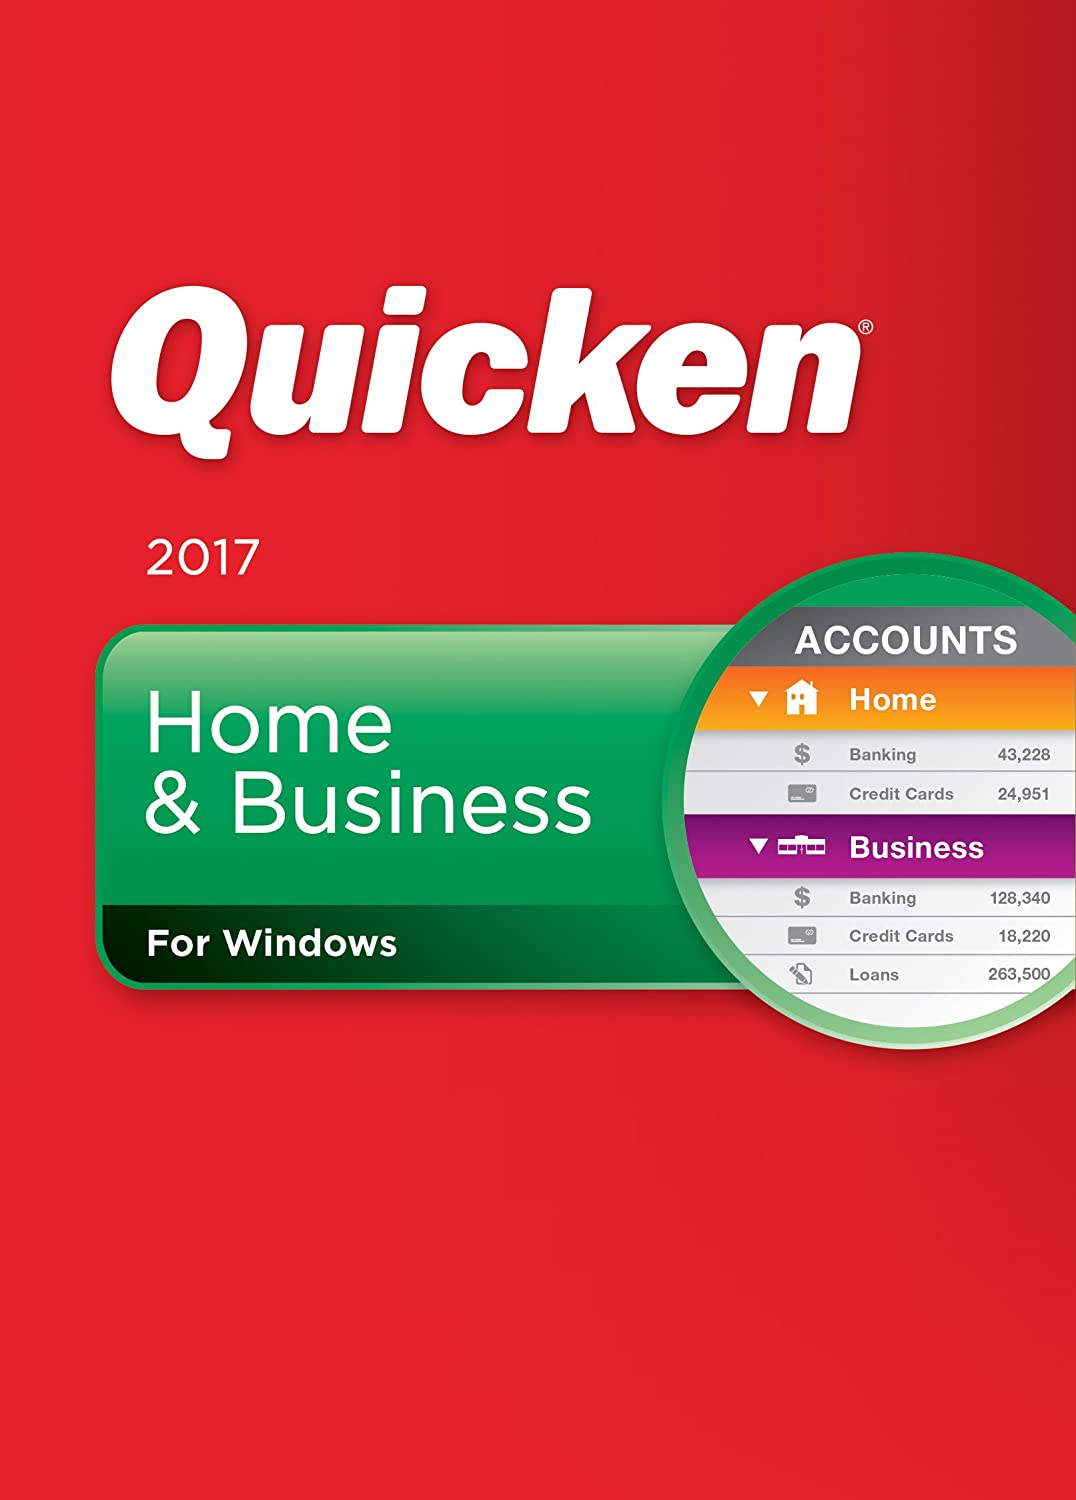 Amazon quicken home business 2017 personal finance amazon quicken home business 2017 personal finance budgeting software download software reheart Gallery